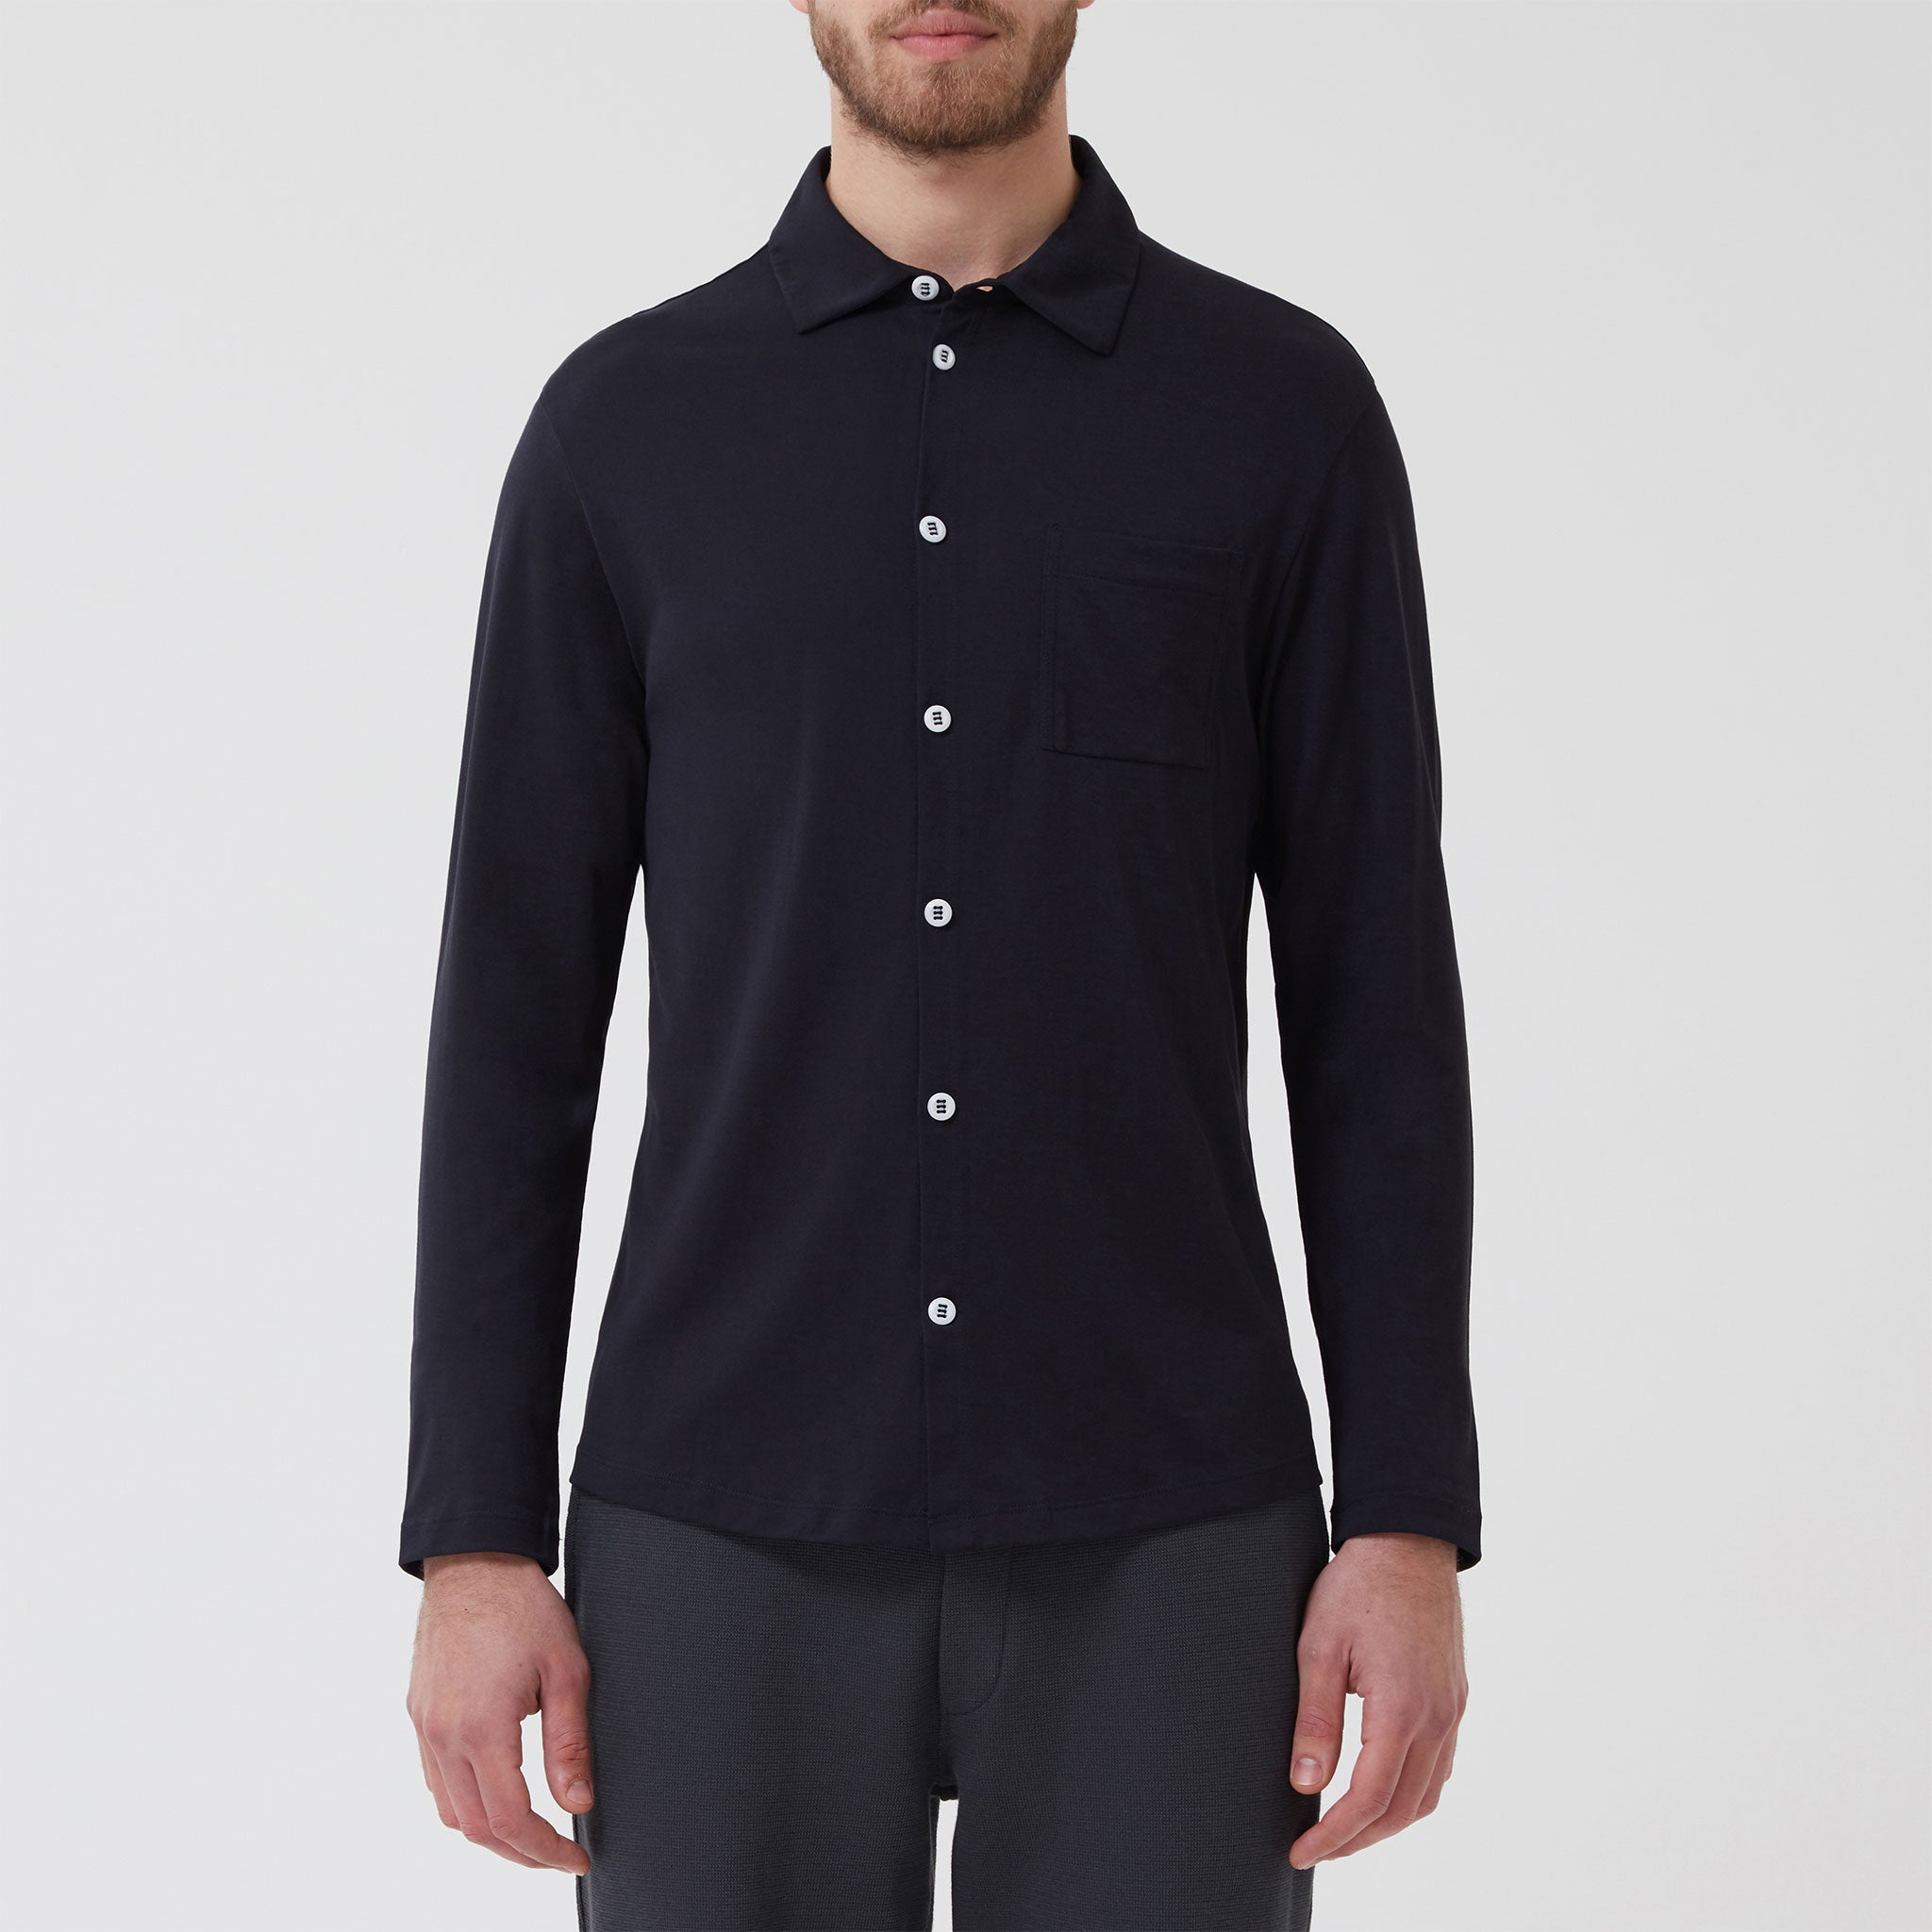 Slip-on Shirt Navy - Hamilton and Hare Ltd